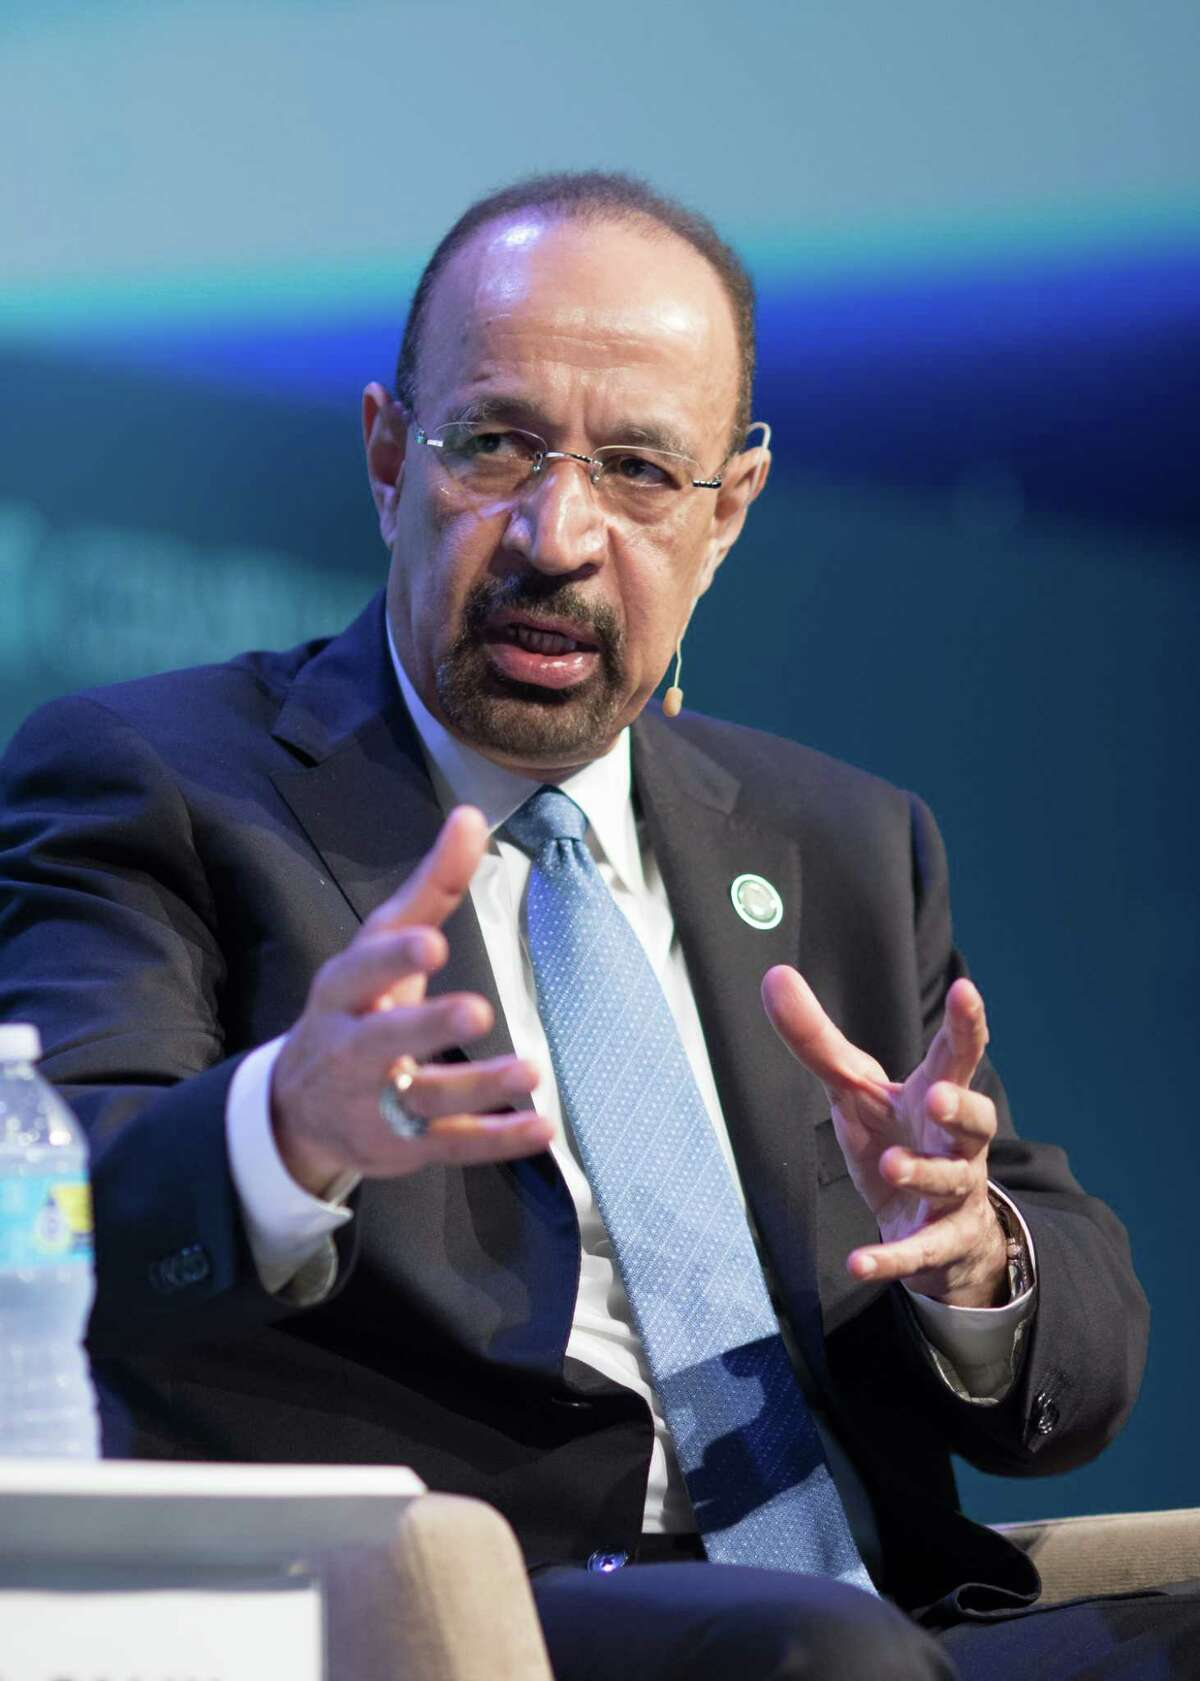 Khalid Bin Abdulaziz Al-Falih, Saudi Arabia's energy and industry minister, speaks during the 2017 IHS CERAWeek conference in Houston, Texas, U.S., on Monday, March 7, 2017. CERAWeek gathers energy industry leaders, experts, government officials and policymakers, leaders from the technology, financial, and industrial communities to provide new insights and critically-important dialogue on energy markets. Photographer: F. Carter Smith/Bloomberg